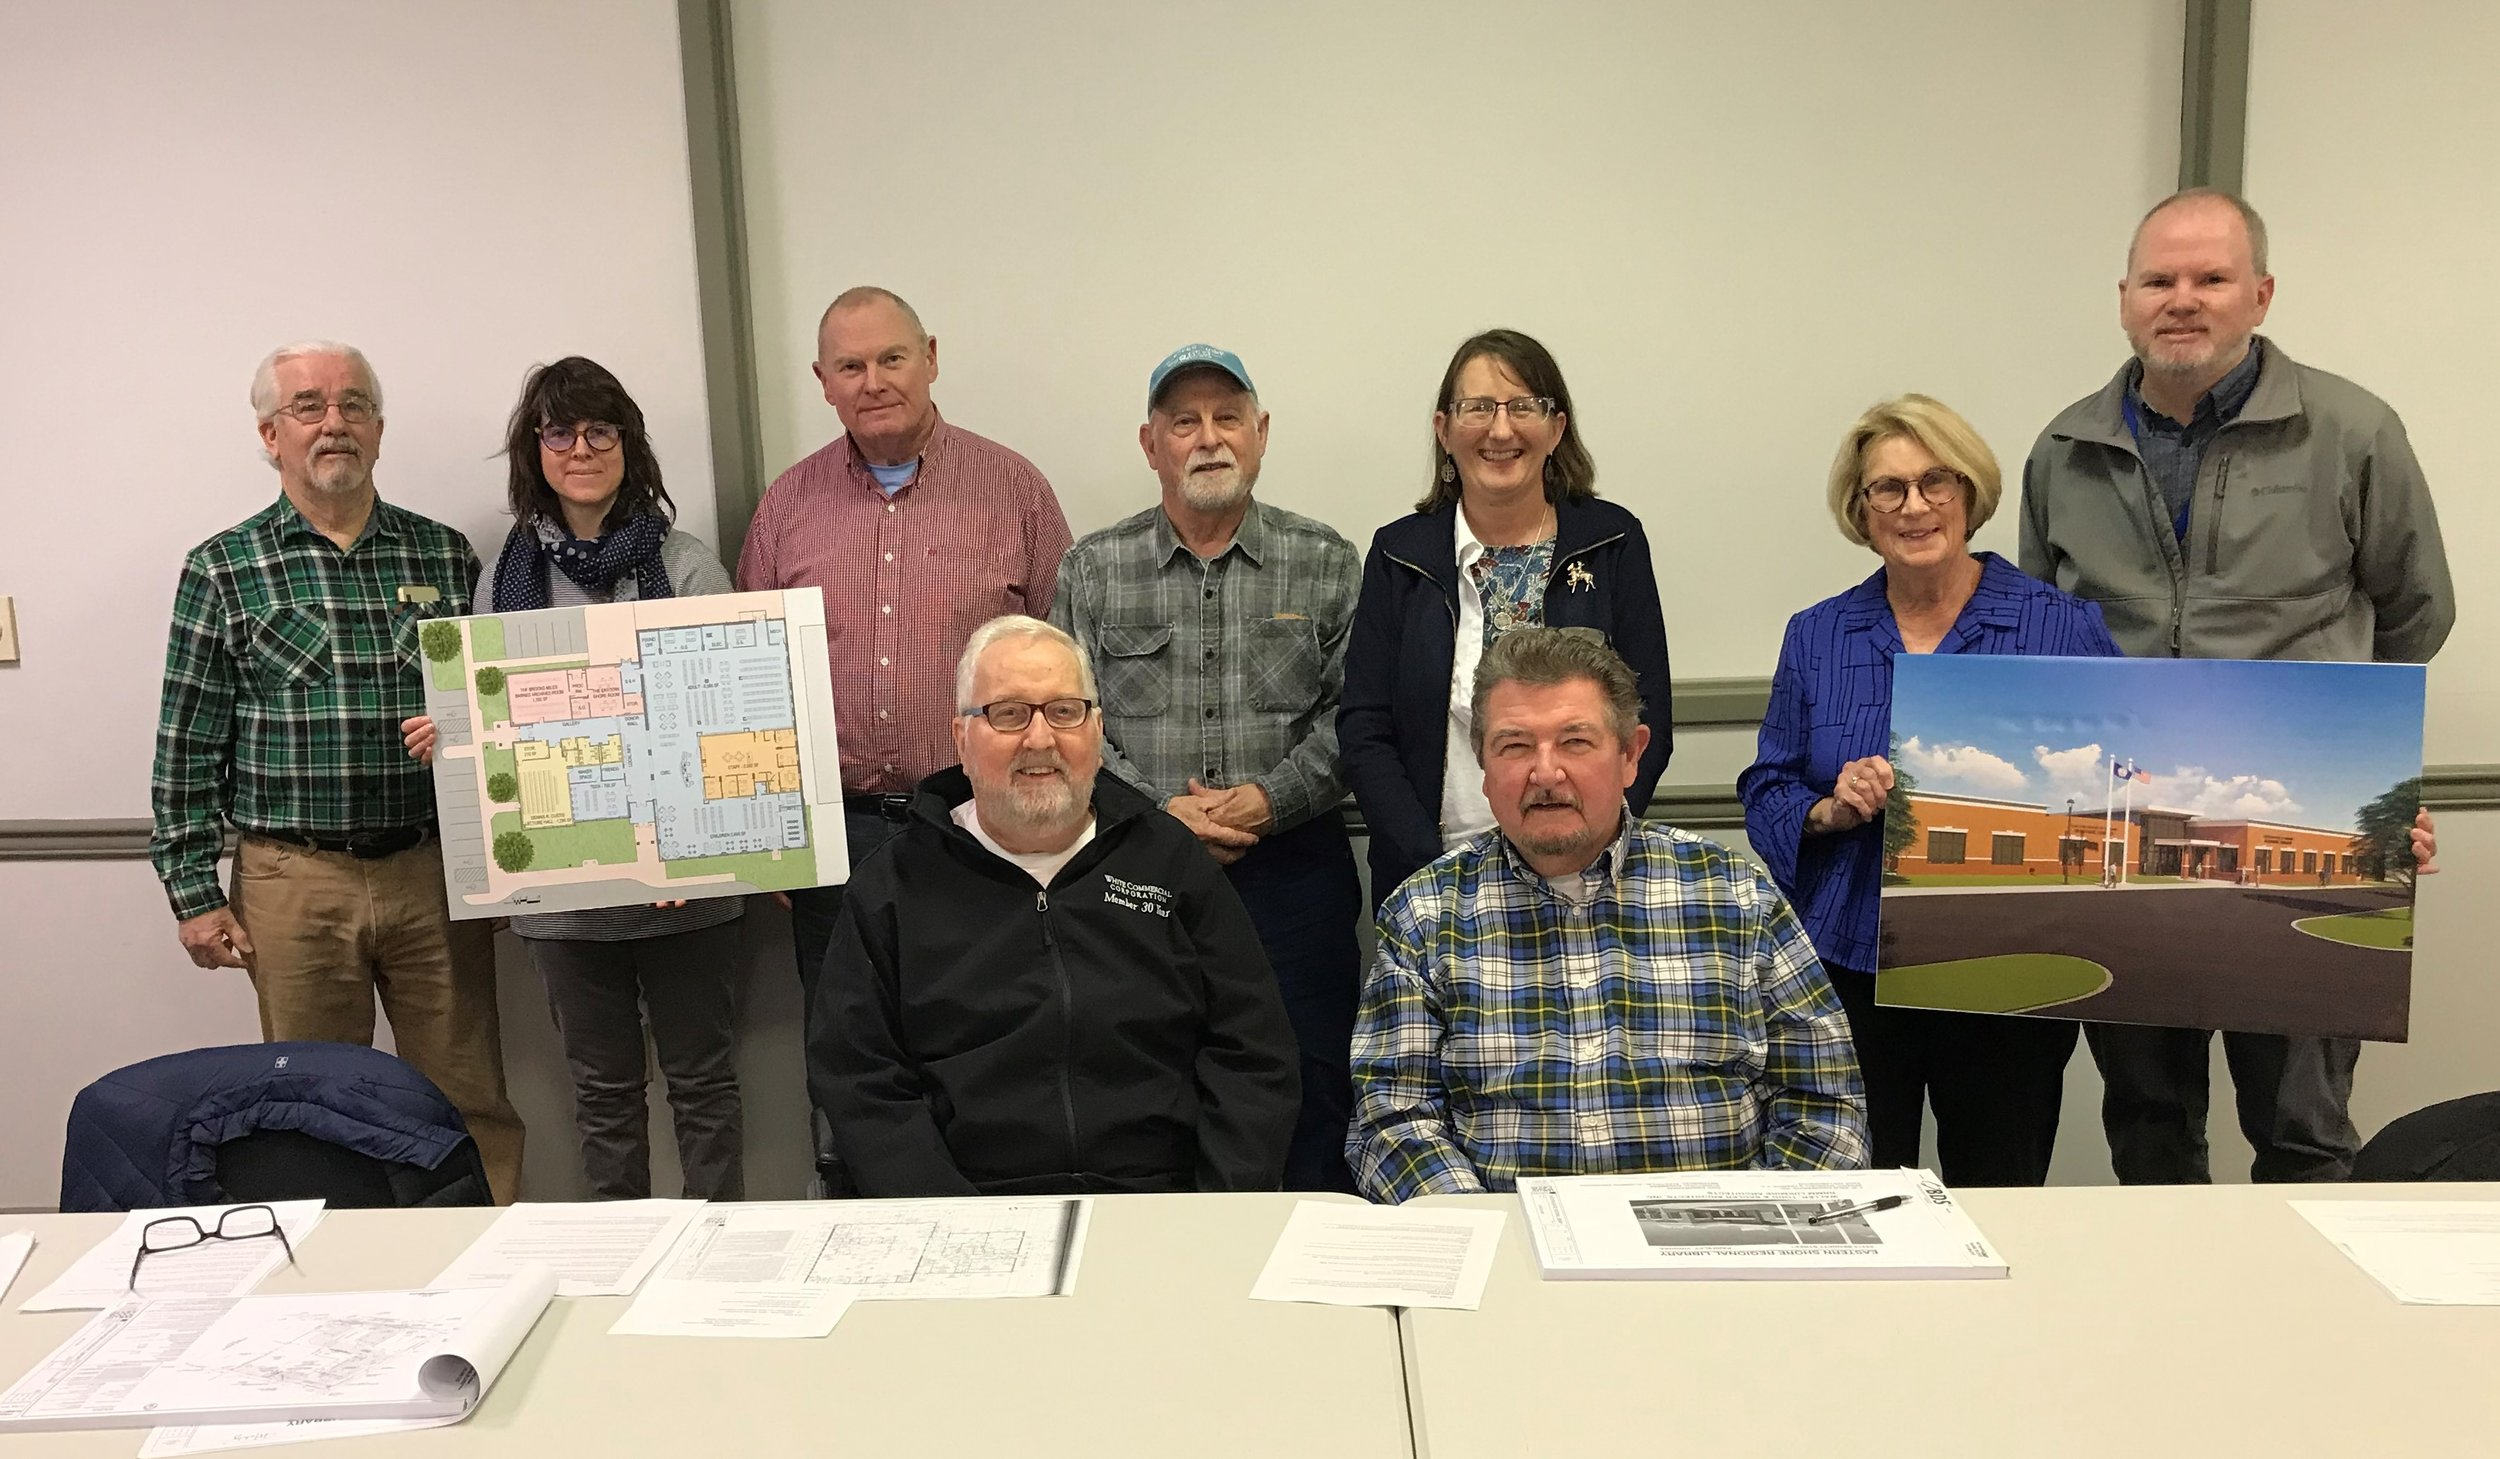 The library's Construction Committee and the project Steering Committee recently met to approve the construction plans. Pictured left to right: Tom Rakowski, Charle Ricci, Dennis Custis, Richard Lewis, Supervisor Paul Muhly, Cara Burton, Tim Valentine, Pam Holley, and Stewart Hall.